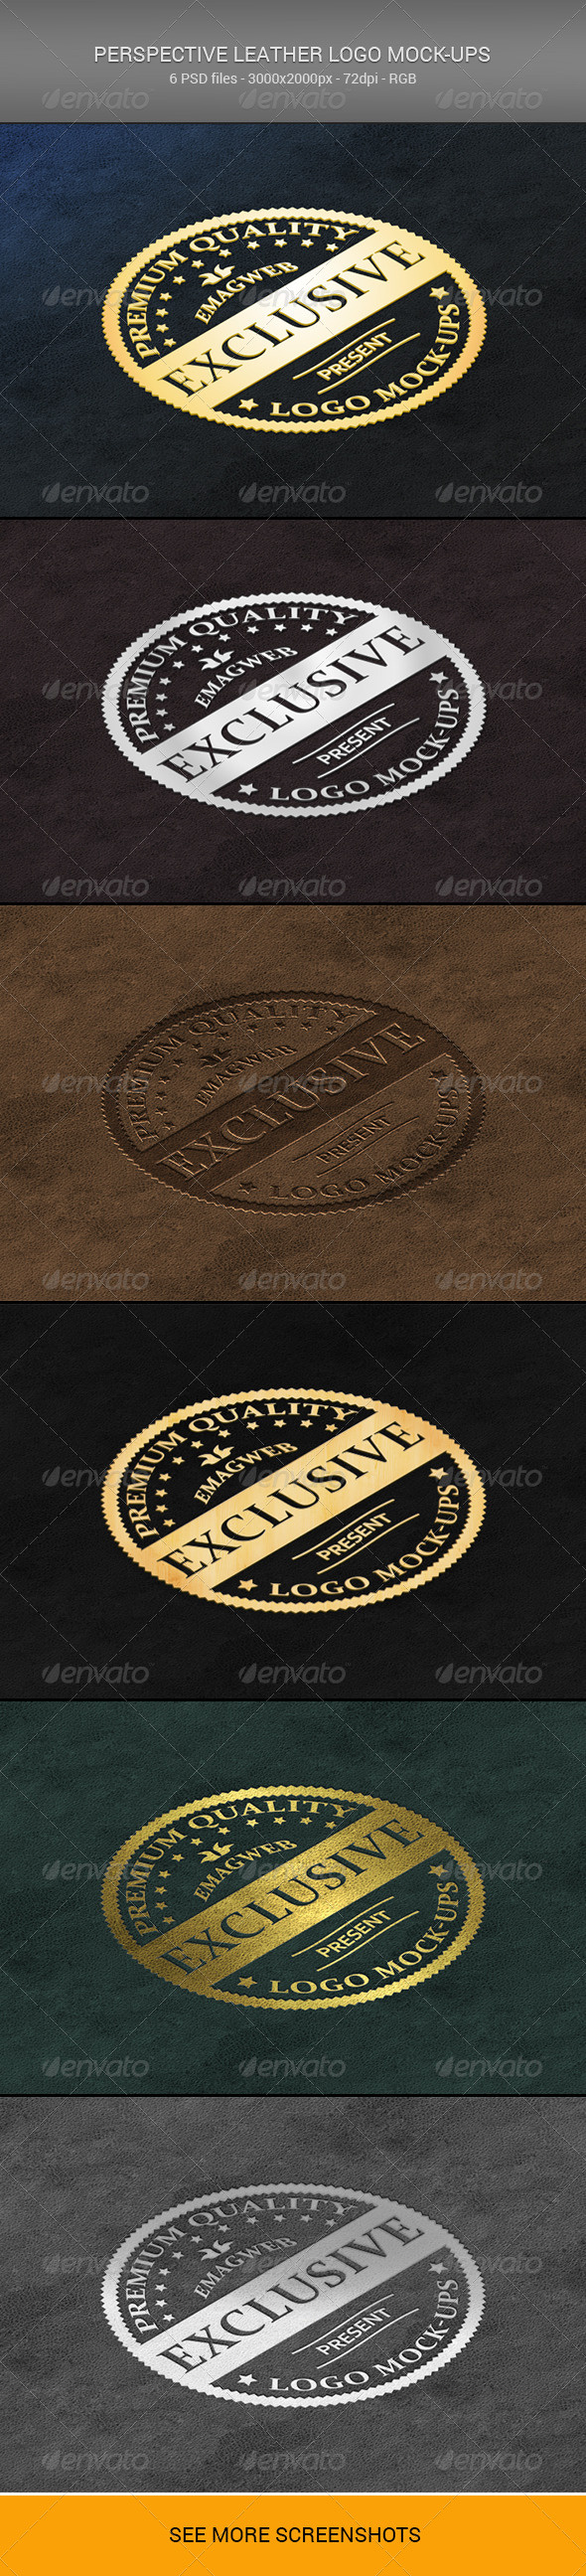 GraphicRiver Perspective Leather Logo Mock-ups 6667112